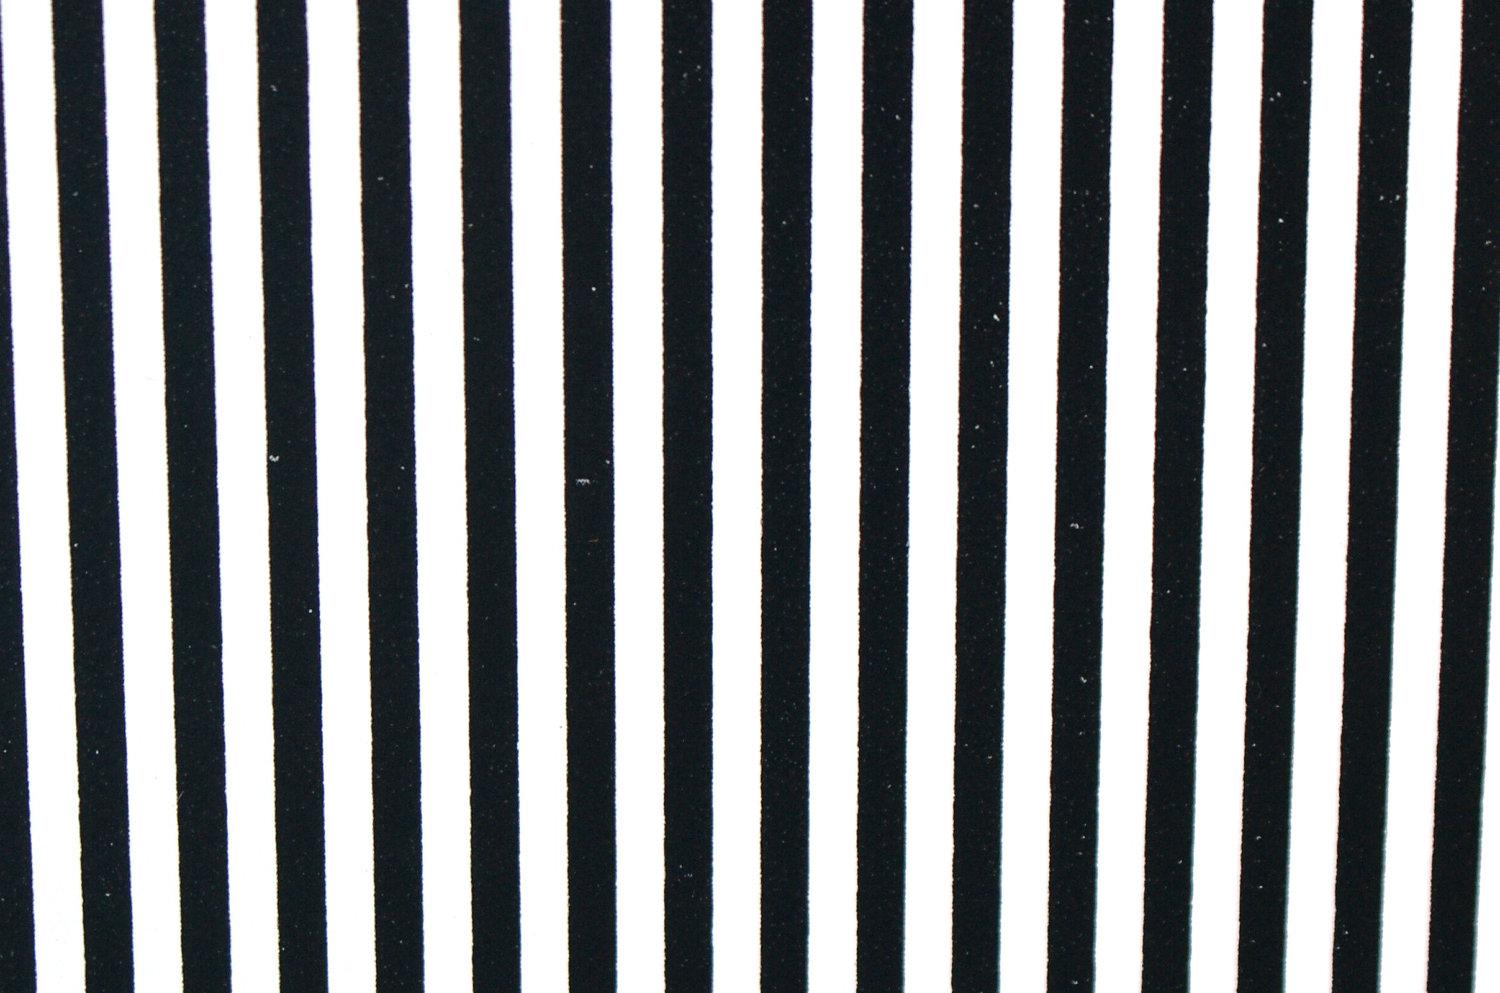 Black And White Pinstripe Wallpaper 1500x993